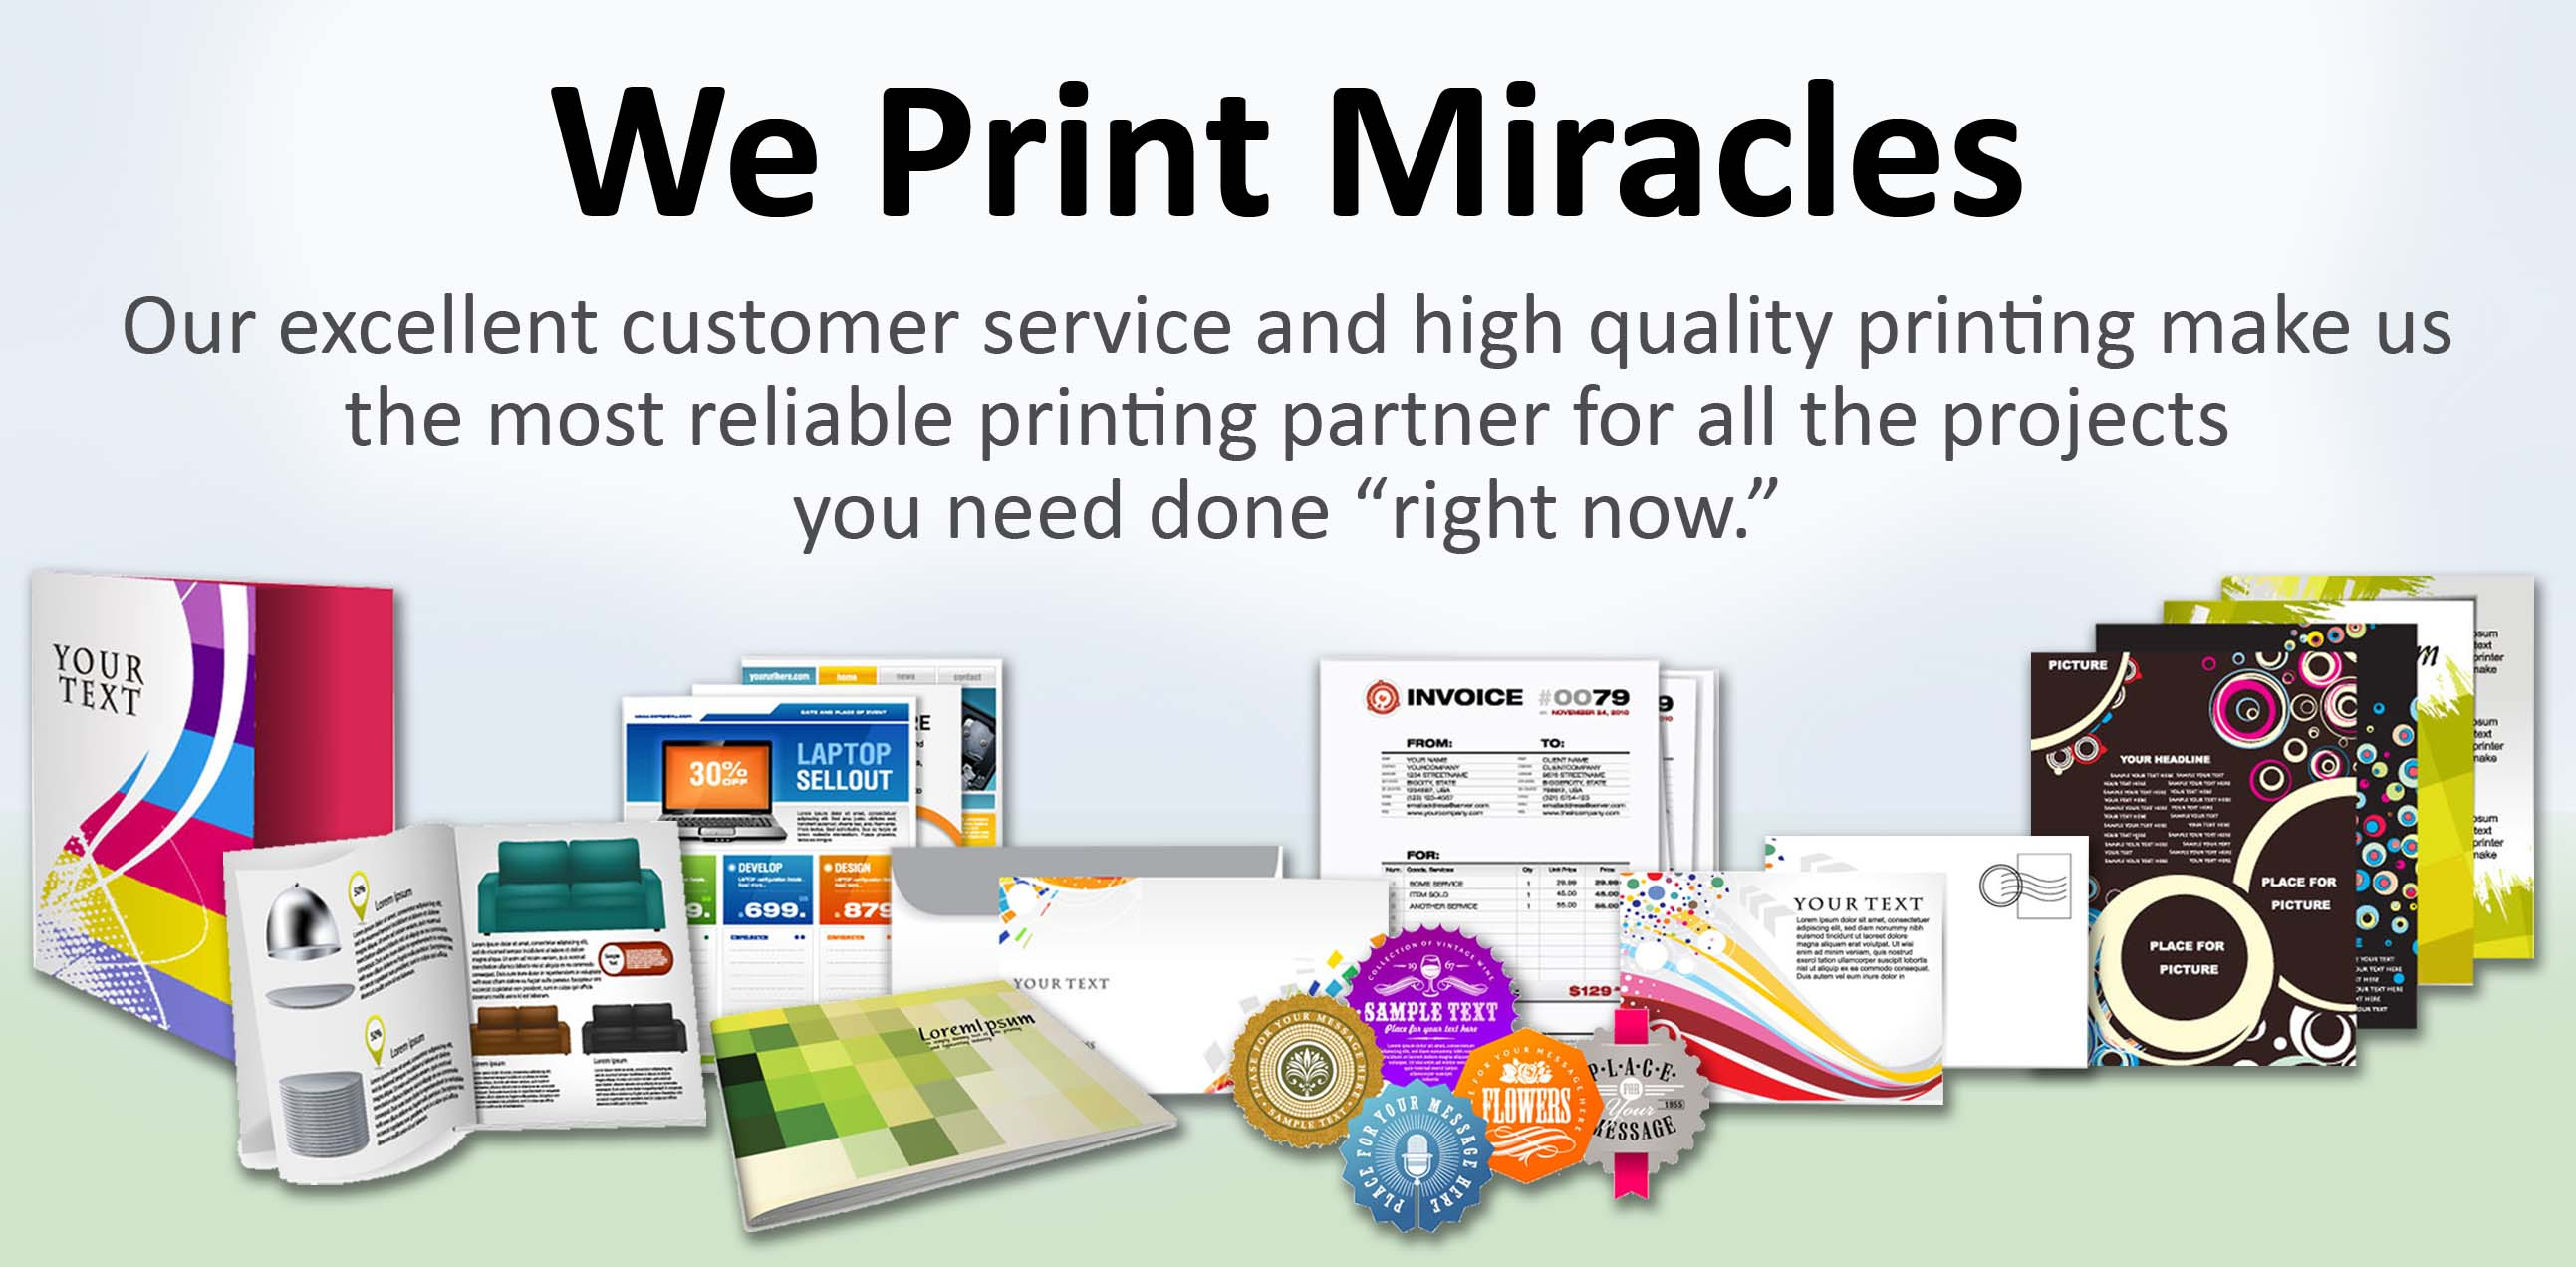 Los angeles printing company same day printing slb for What is the best poster website